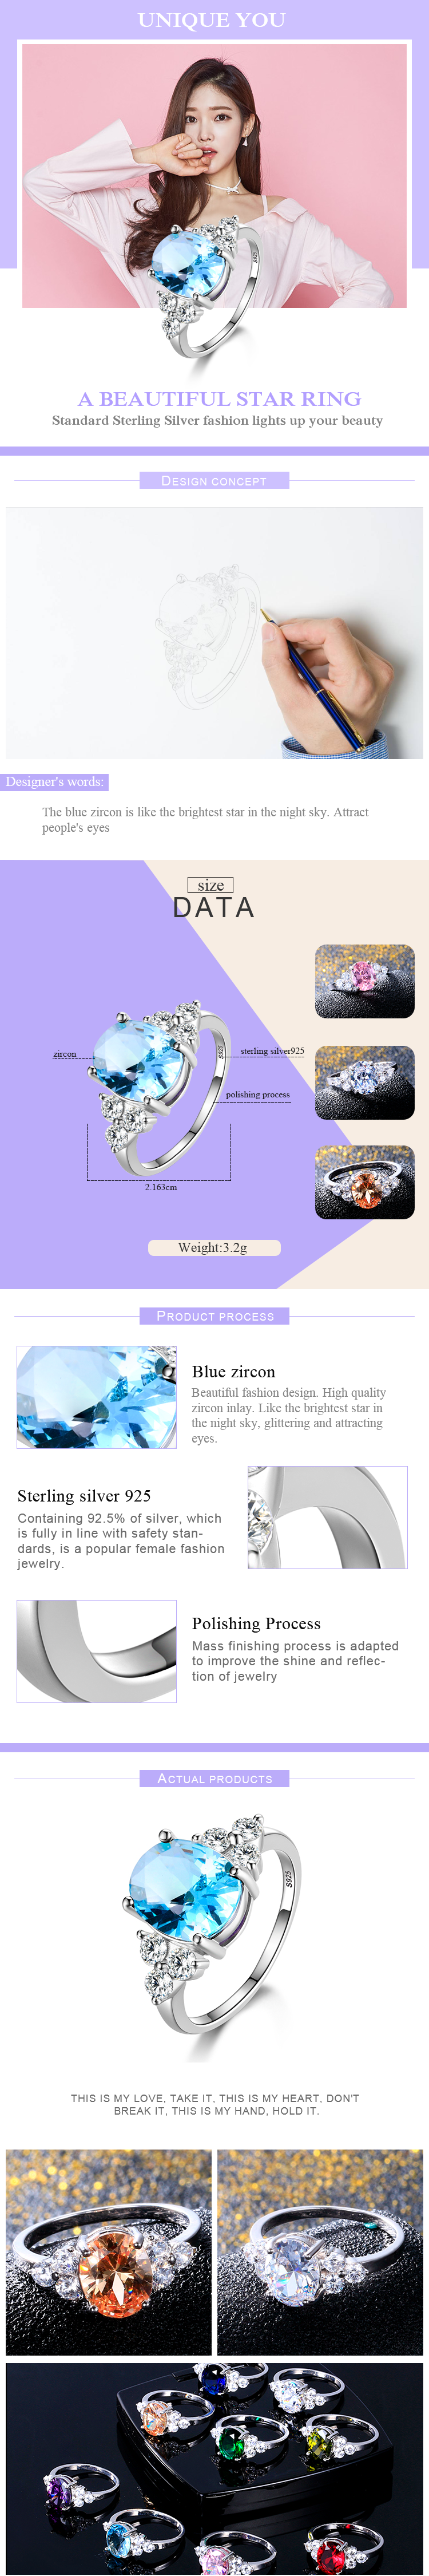 HTB1xGHqseuSBuNjSsziq6zq8pXaR - Women's Jewelry 925 Sterling Silver Rings White Pink Light Blue Champagne Zircon Oval Wedding Ring